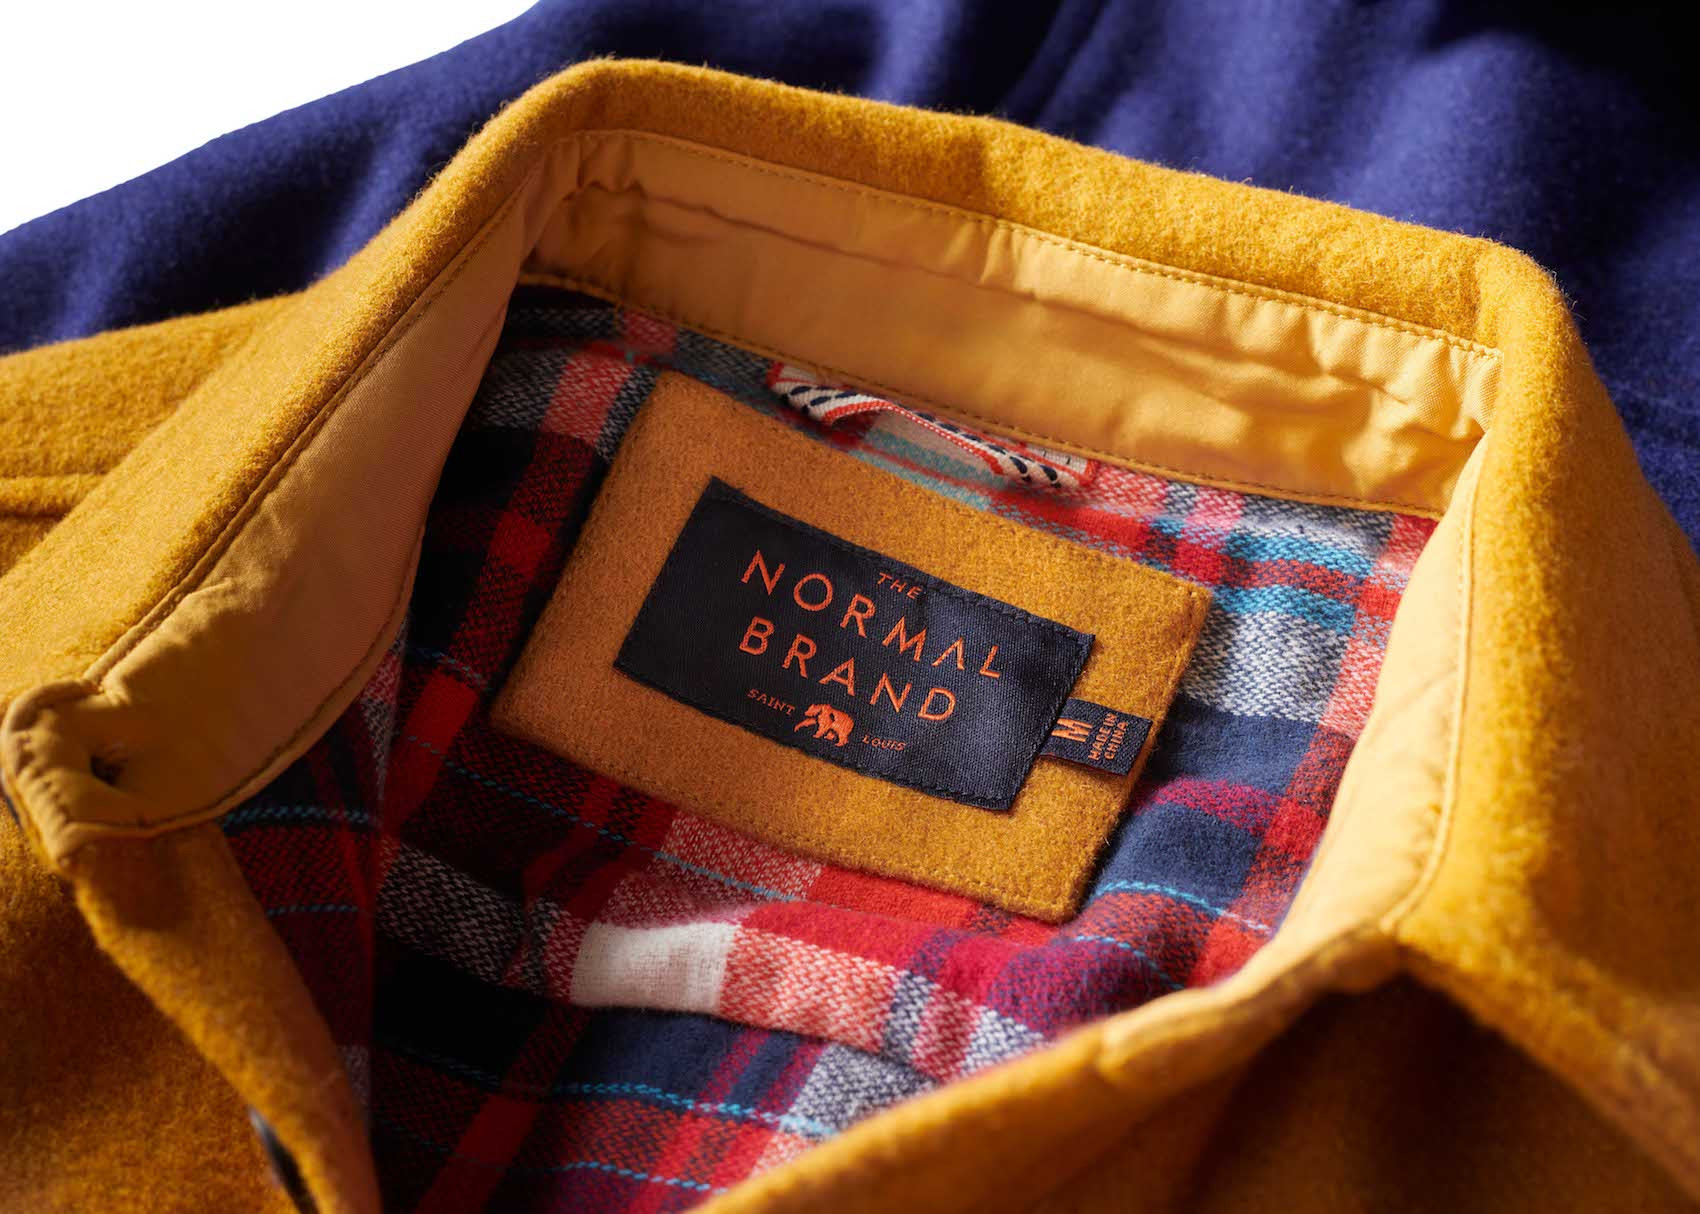 The-Normal-Brand-Editorial-Damion-Lloyd-Photography-Laydown-Commercial-Apparel-Product-Clothing-Art-Directed-Los-Angeles-Orange-County-detail-yellow